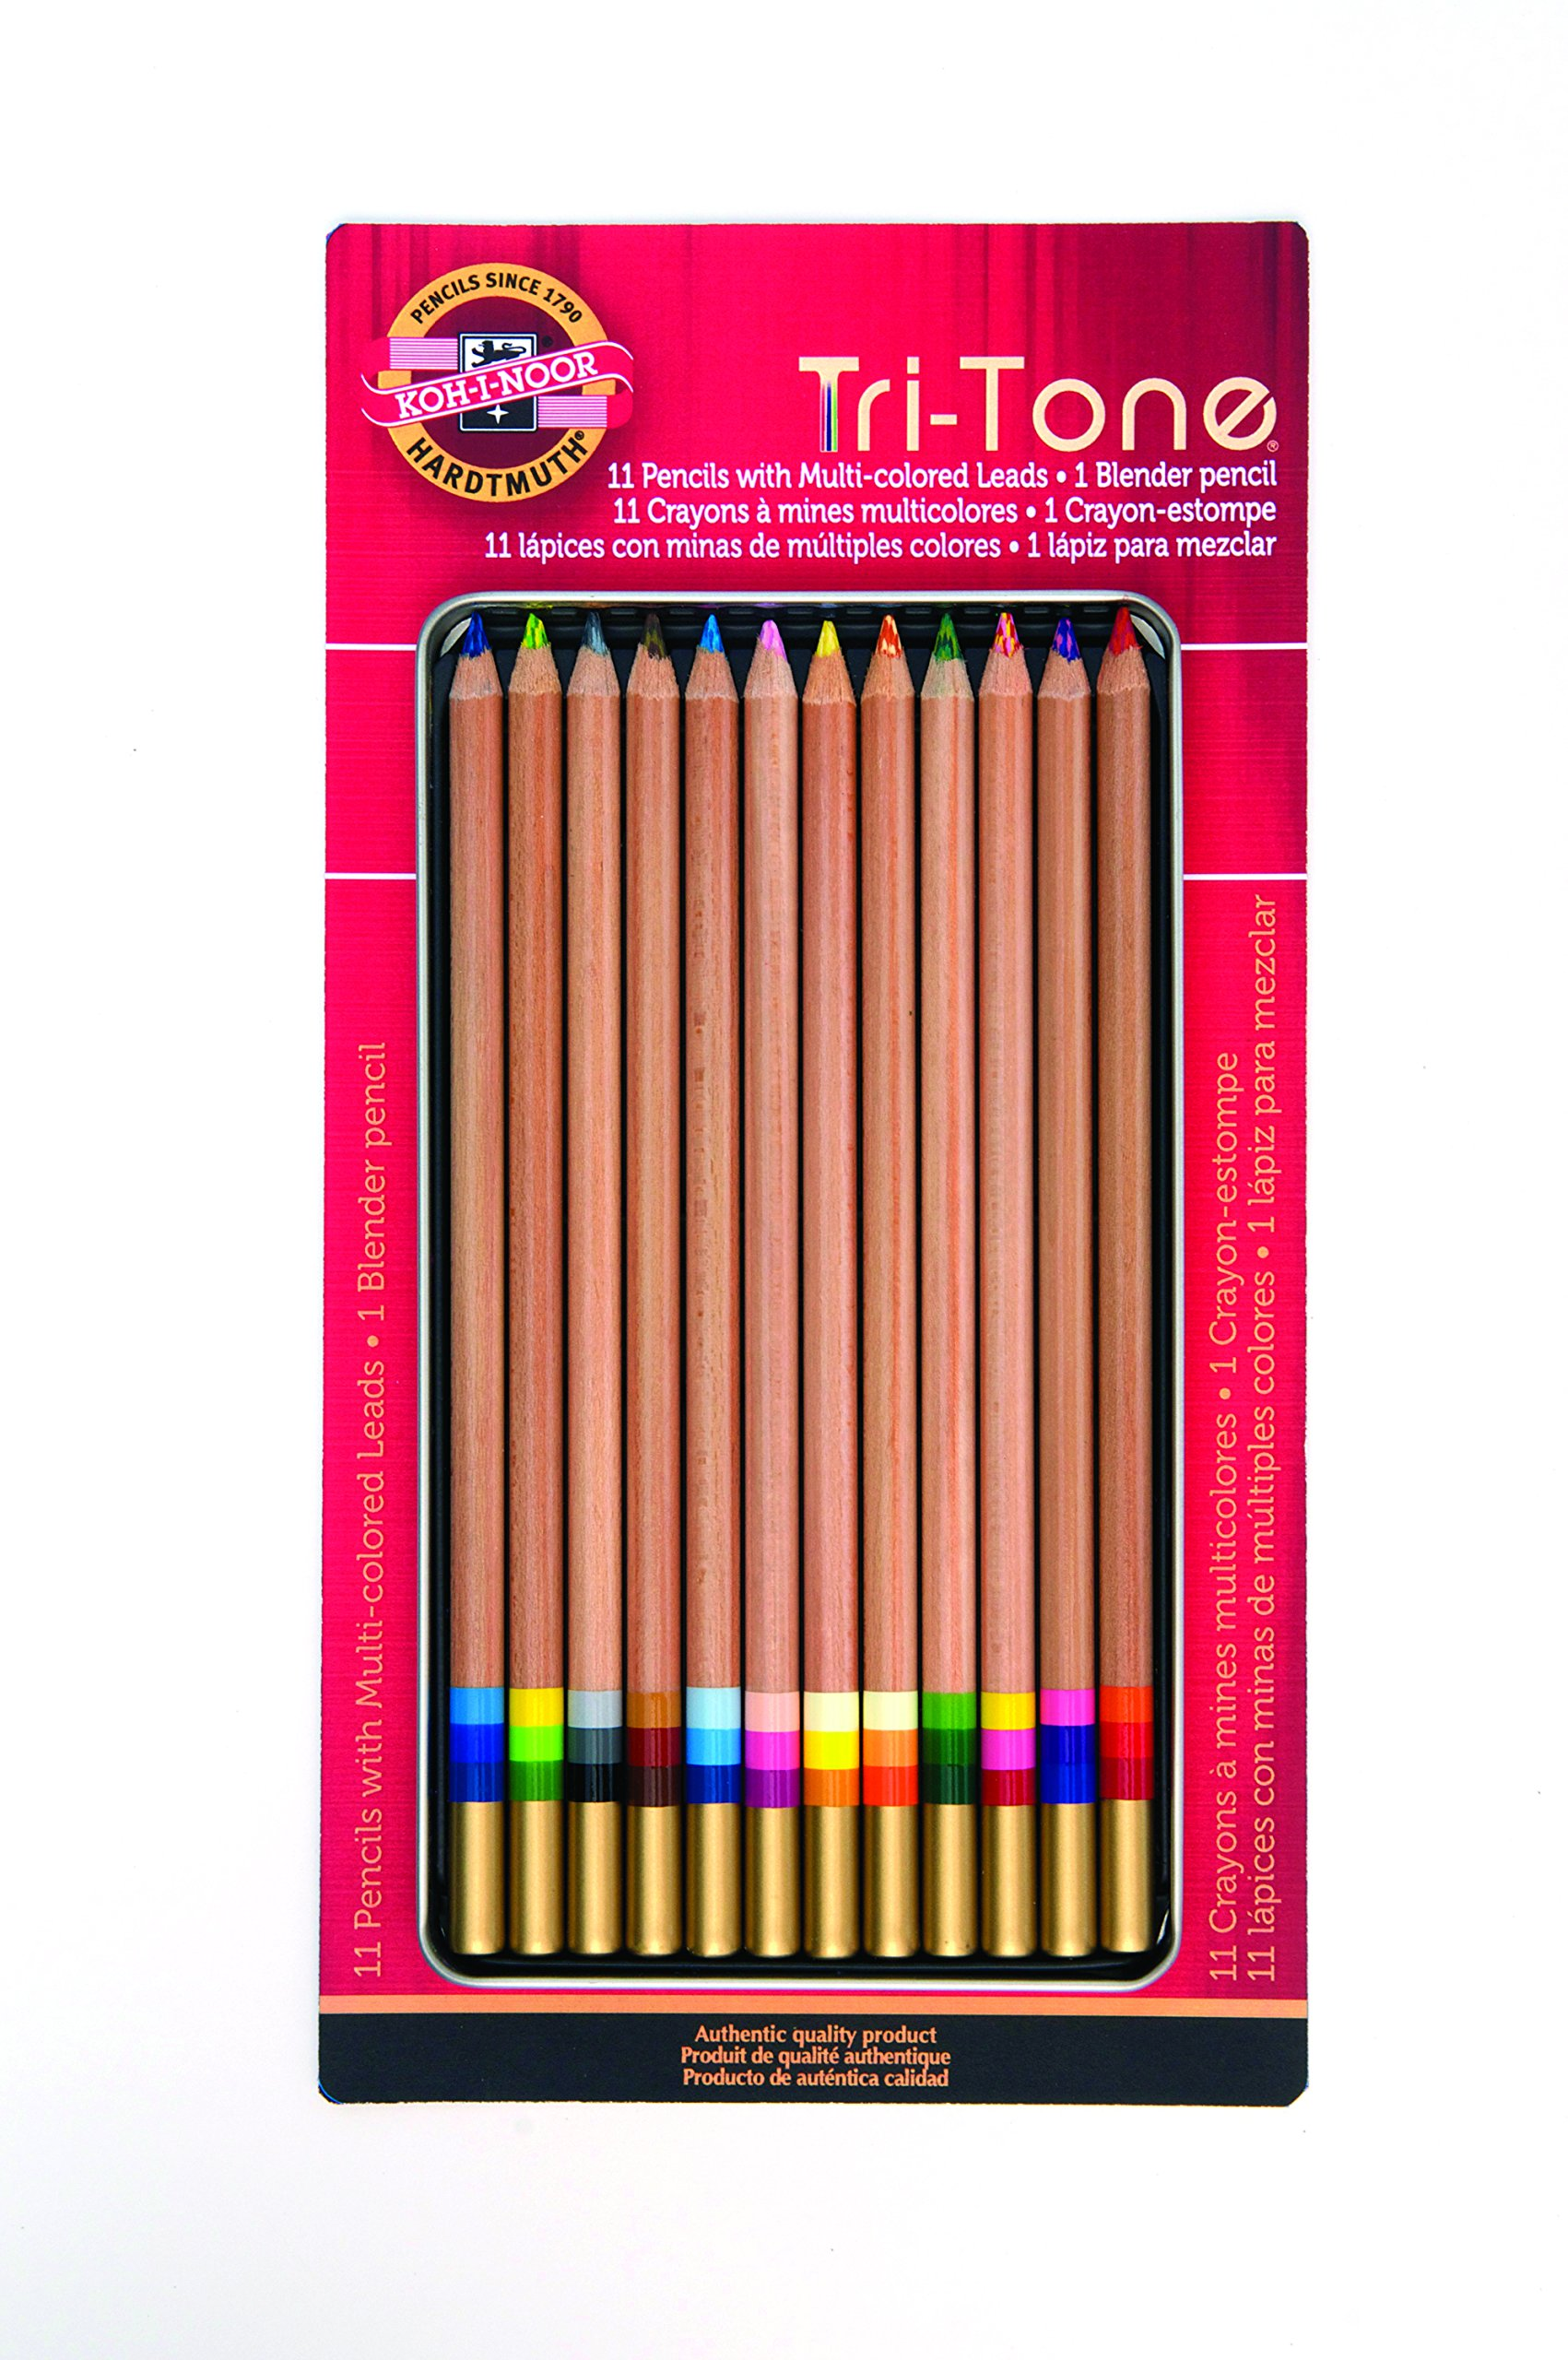 Koh-I-Noor Tri-Tone Multi-Colored Pencil Set, 12 Assorted Colors in Tin and Blister-Carded (FA33TIN12BC)